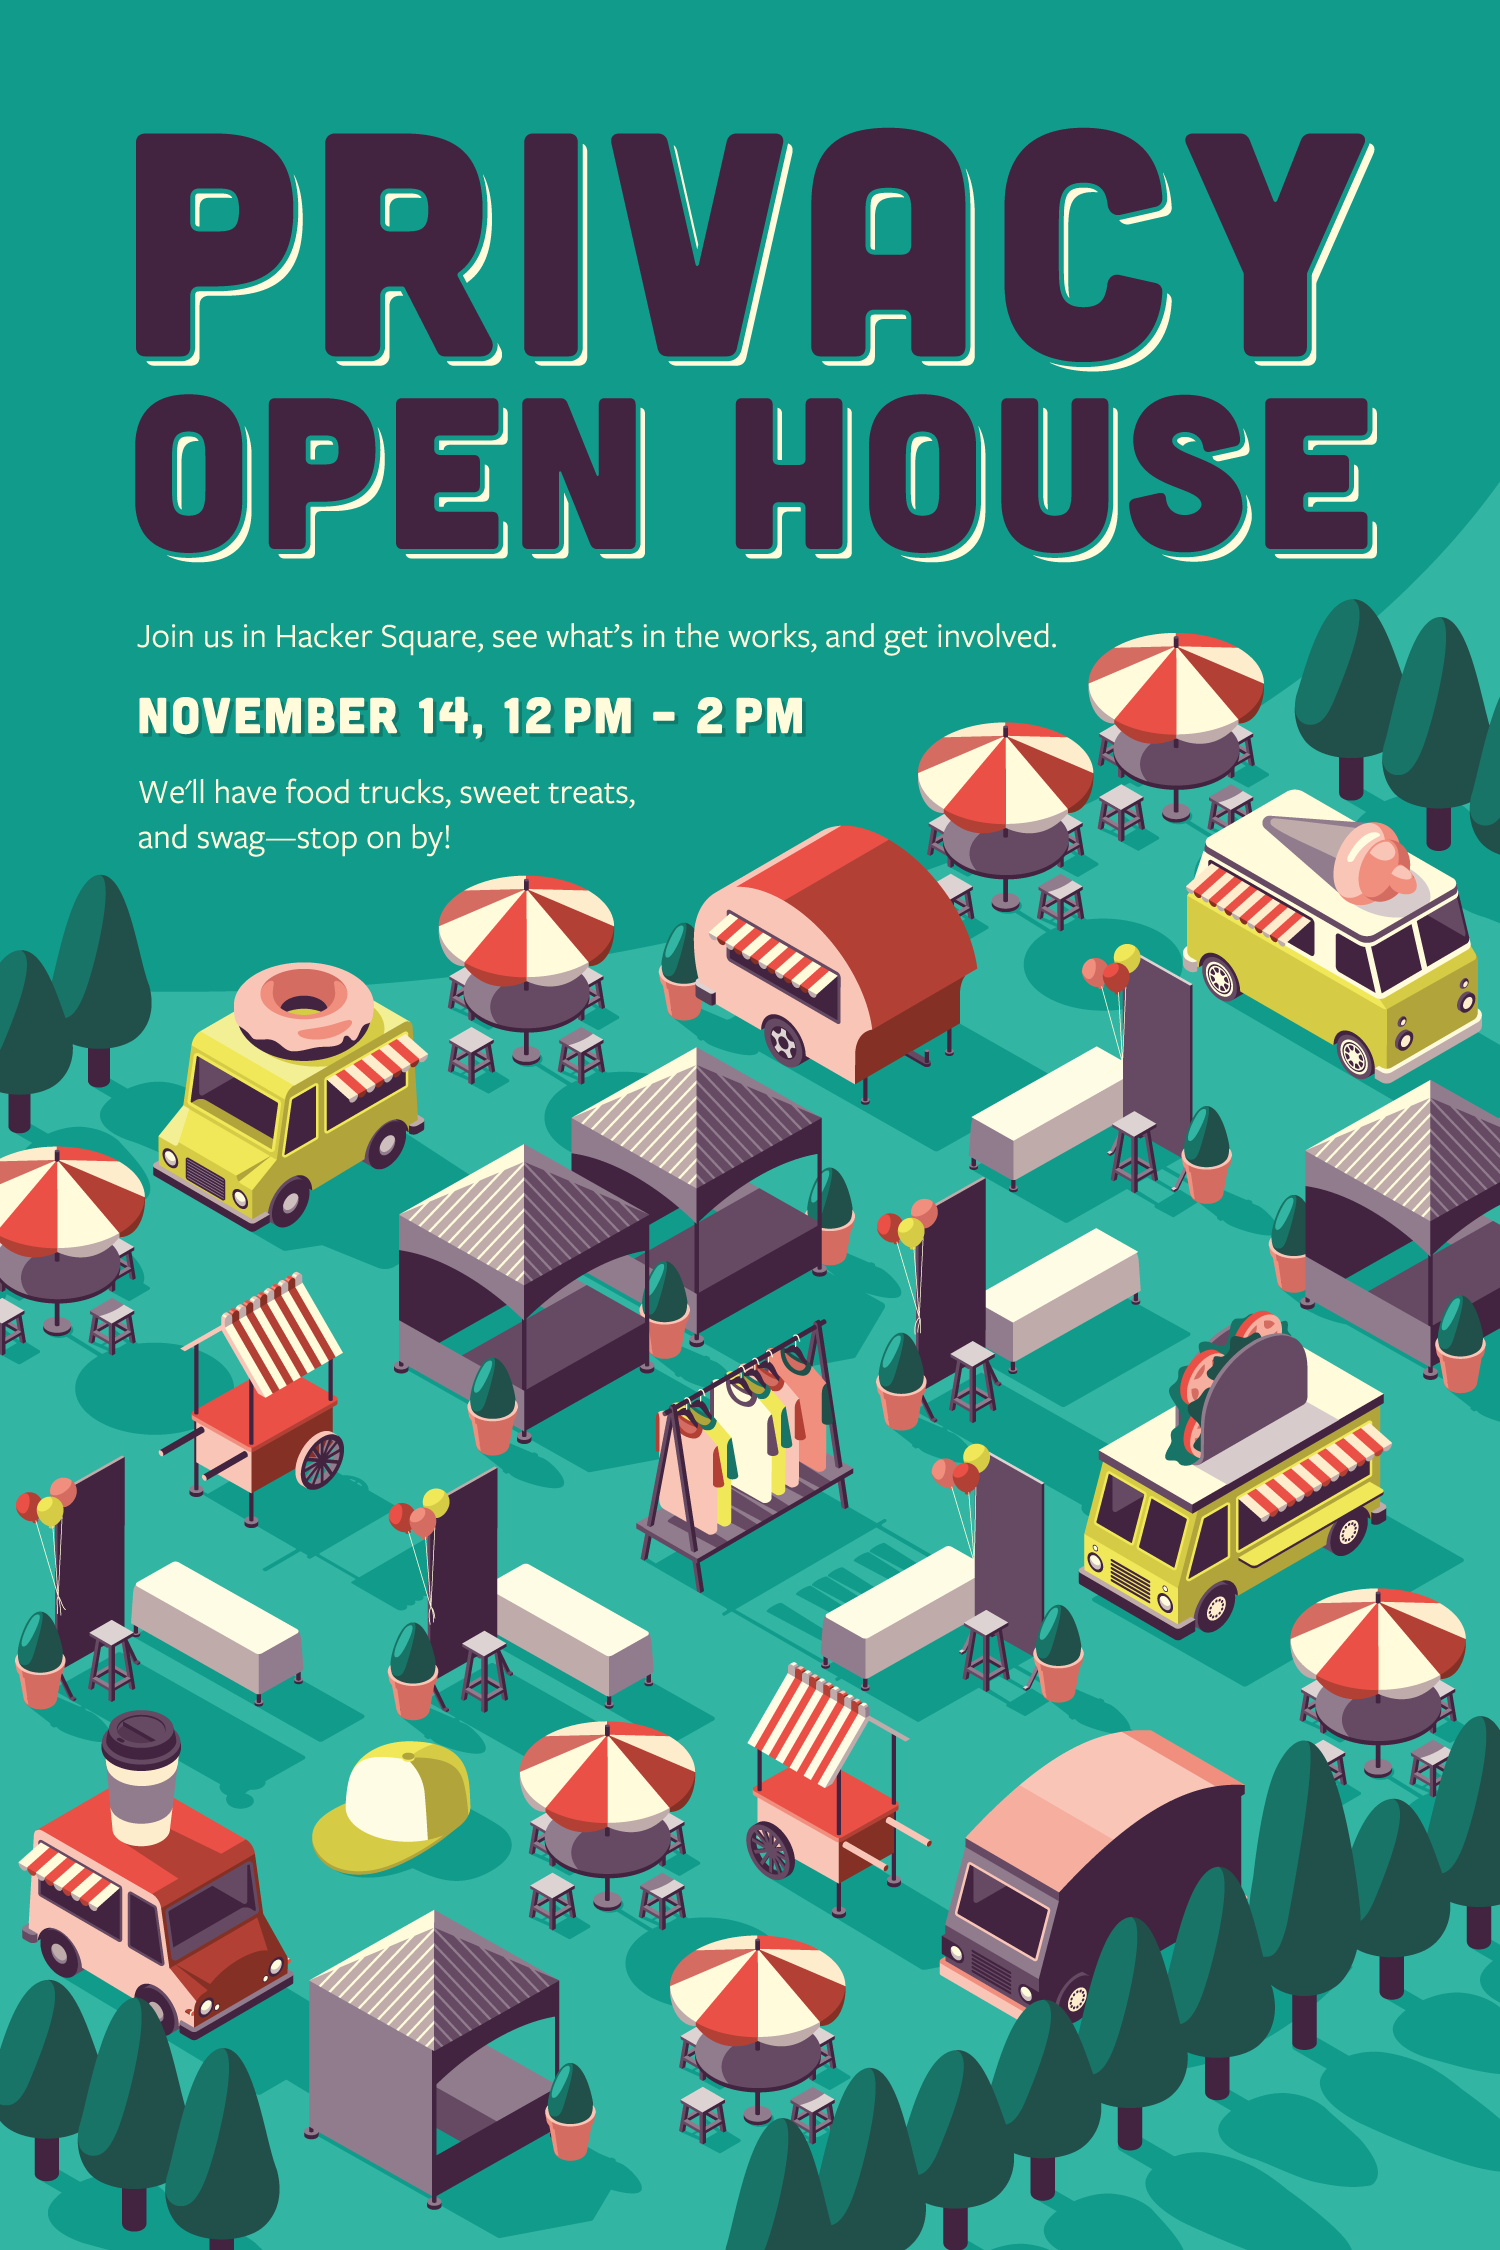 Privacy Open House Poster | Facebook | Makemark